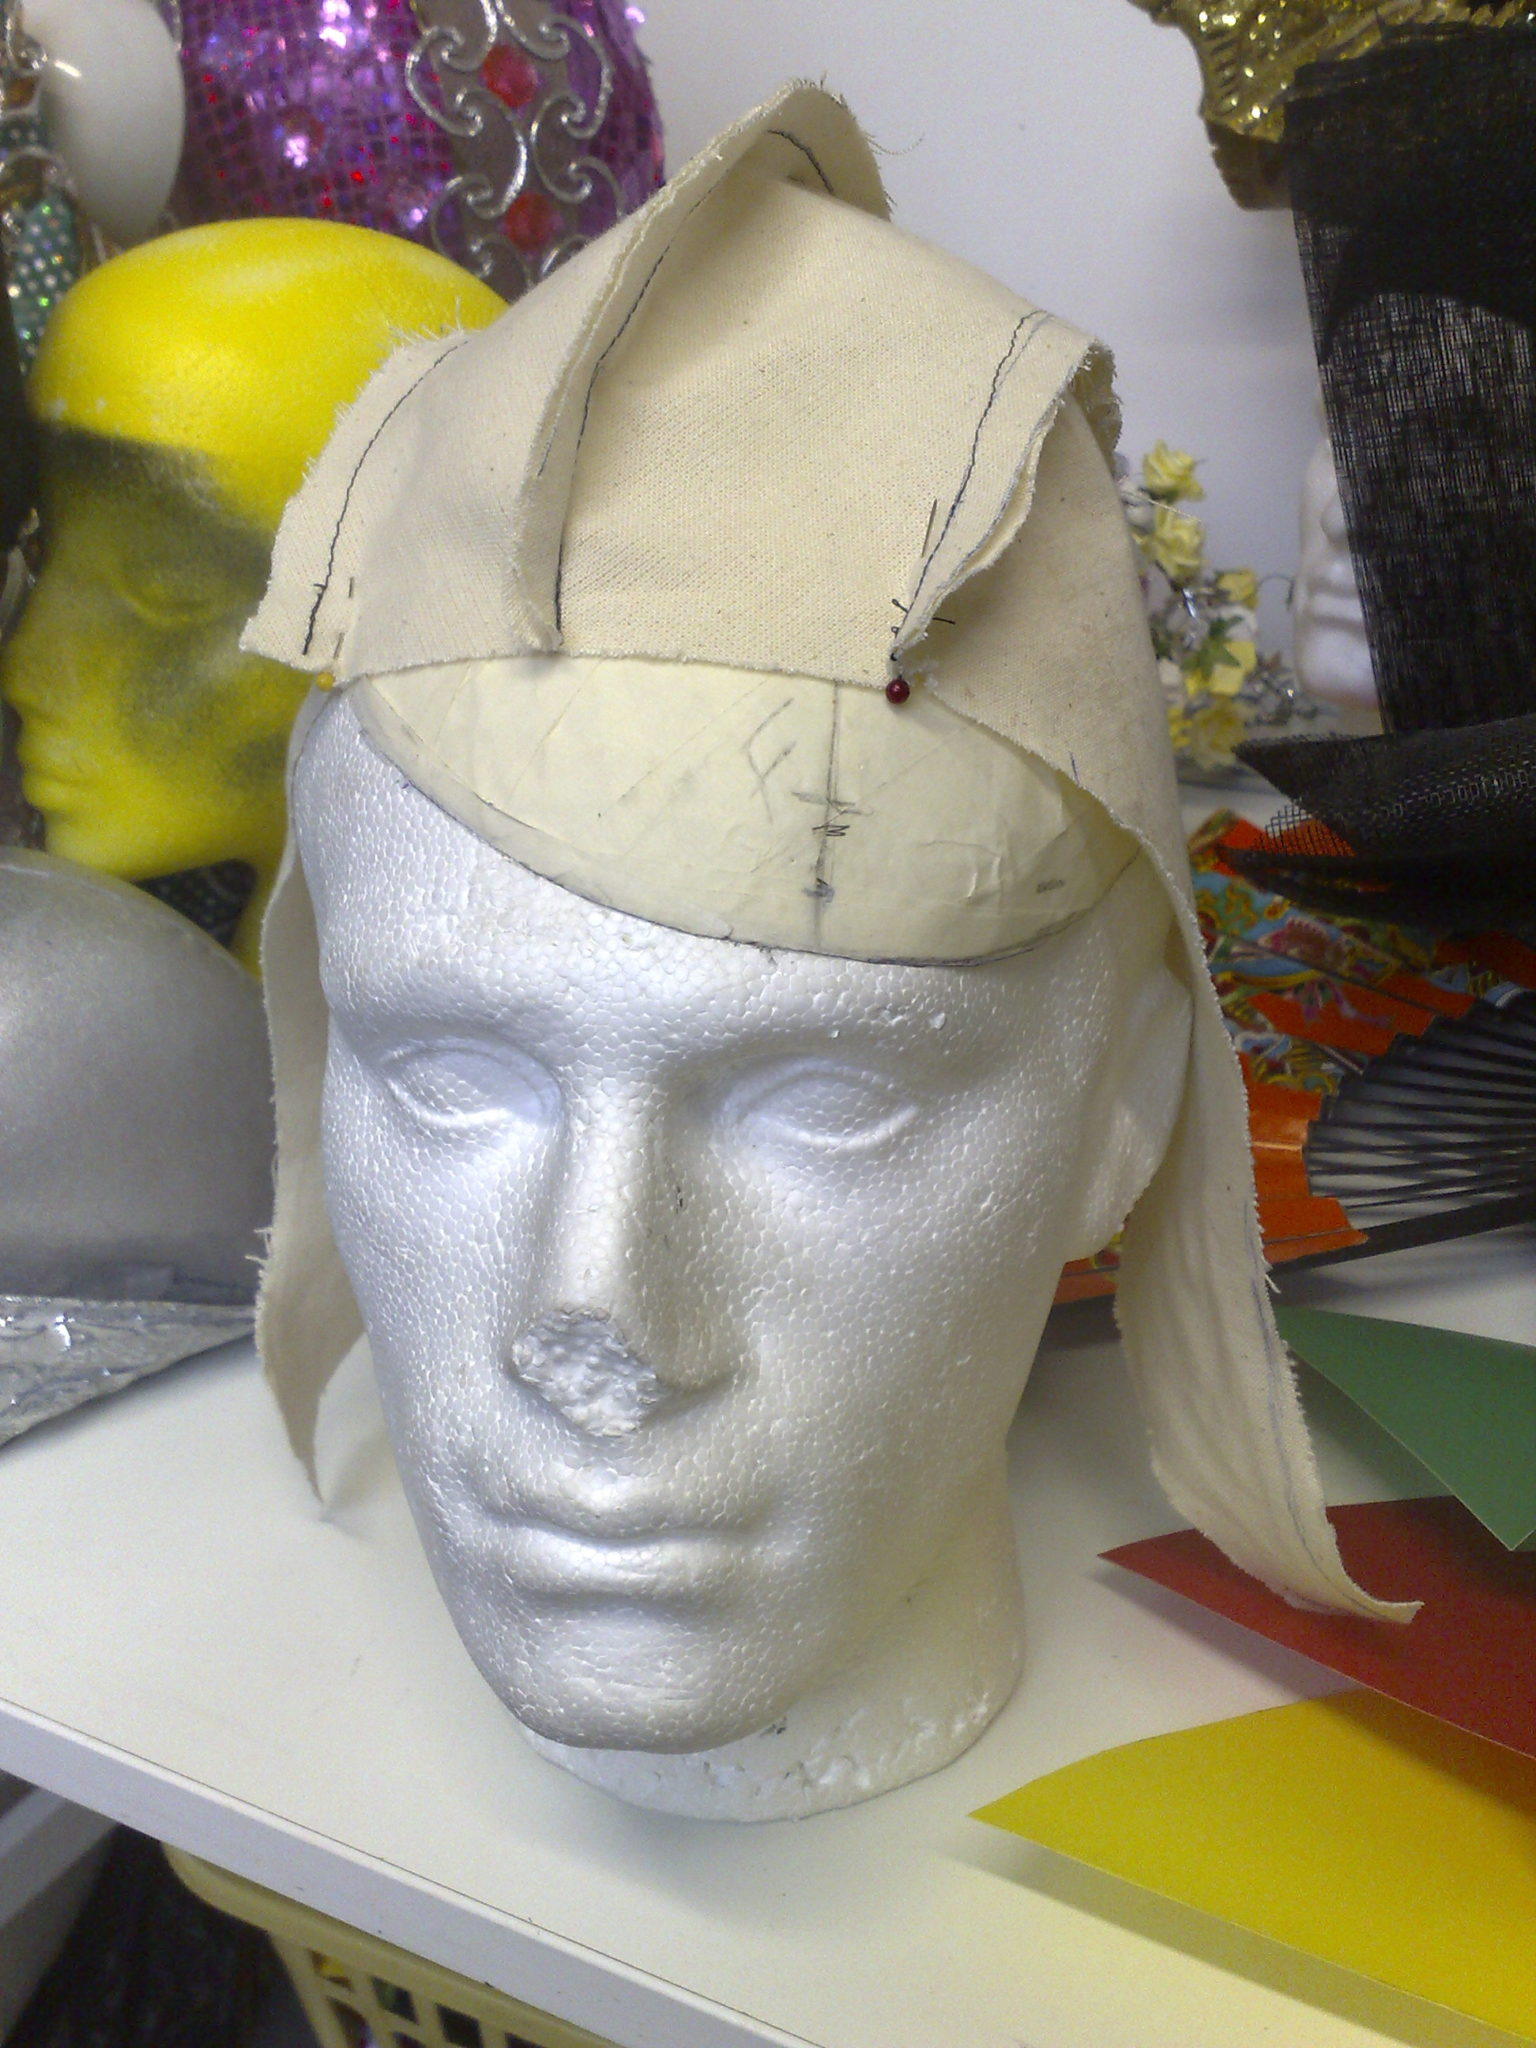 The First of my Mohicans - making a hood with a horse hair mohican